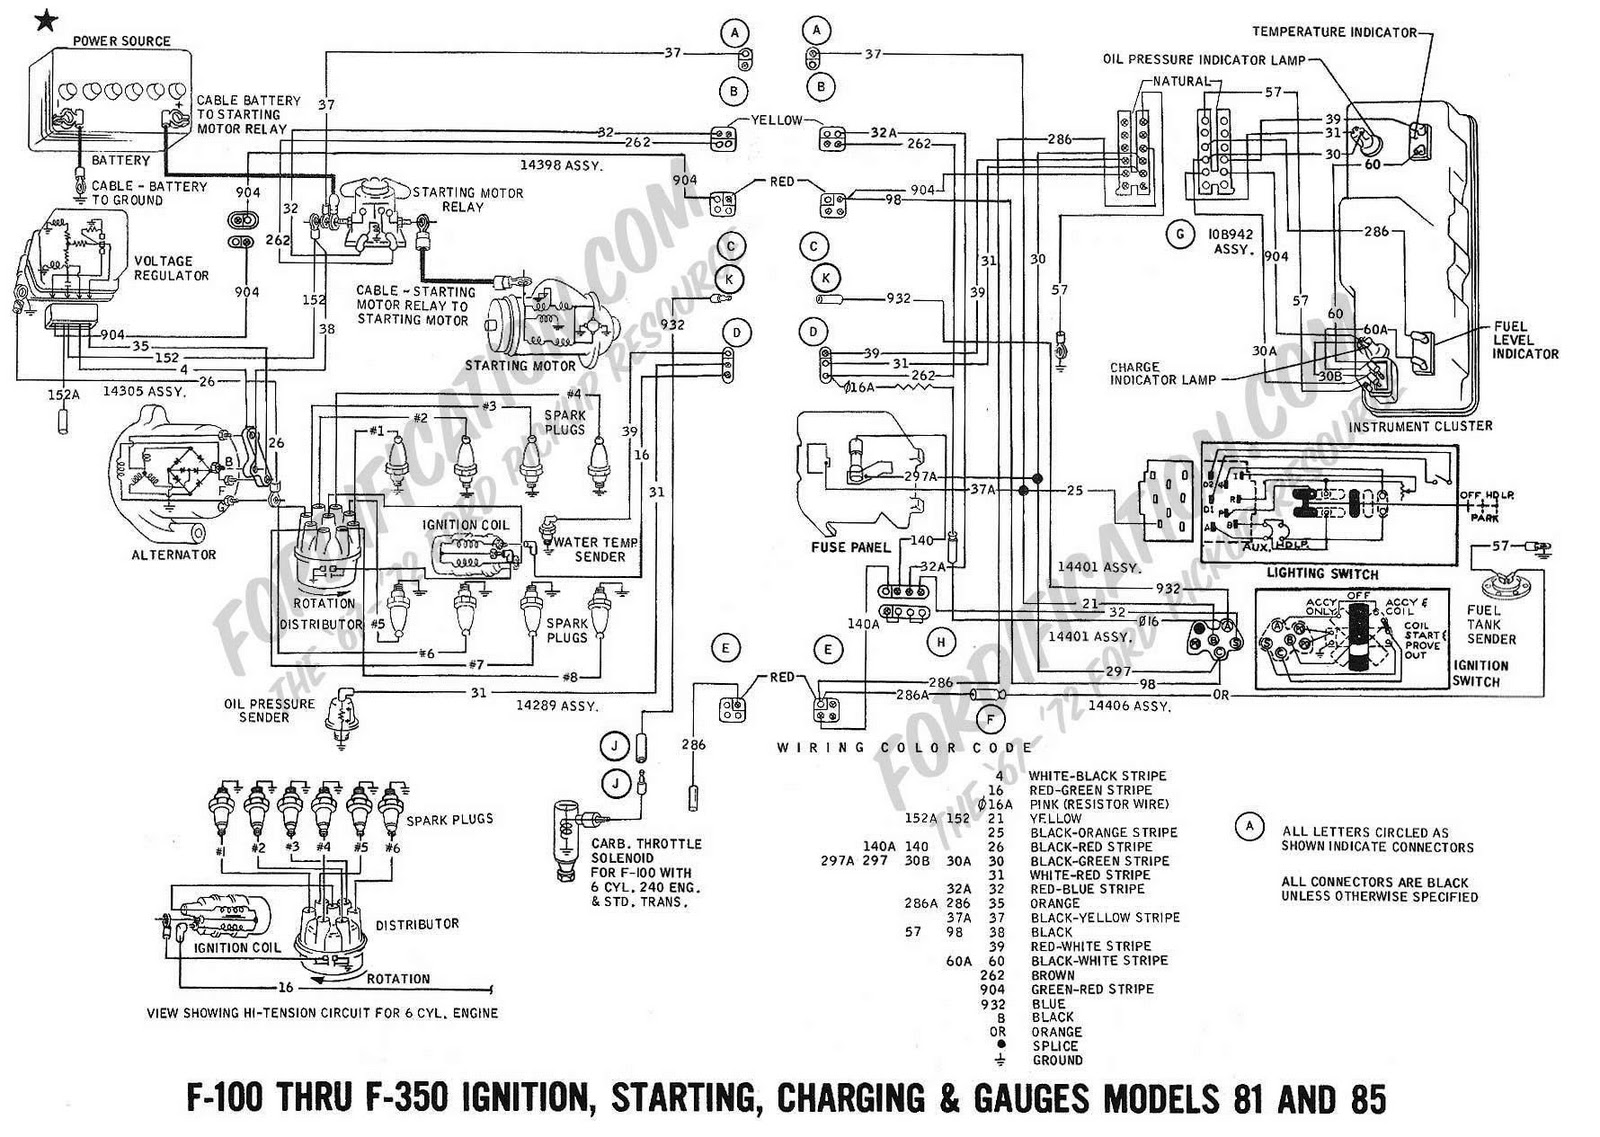 Swell 1968 Ford Falcon Wiring Diagram General Wiring Diagram Data Wiring Cloud Xempagosophoxytasticioscodnessplanboapumohammedshrineorg